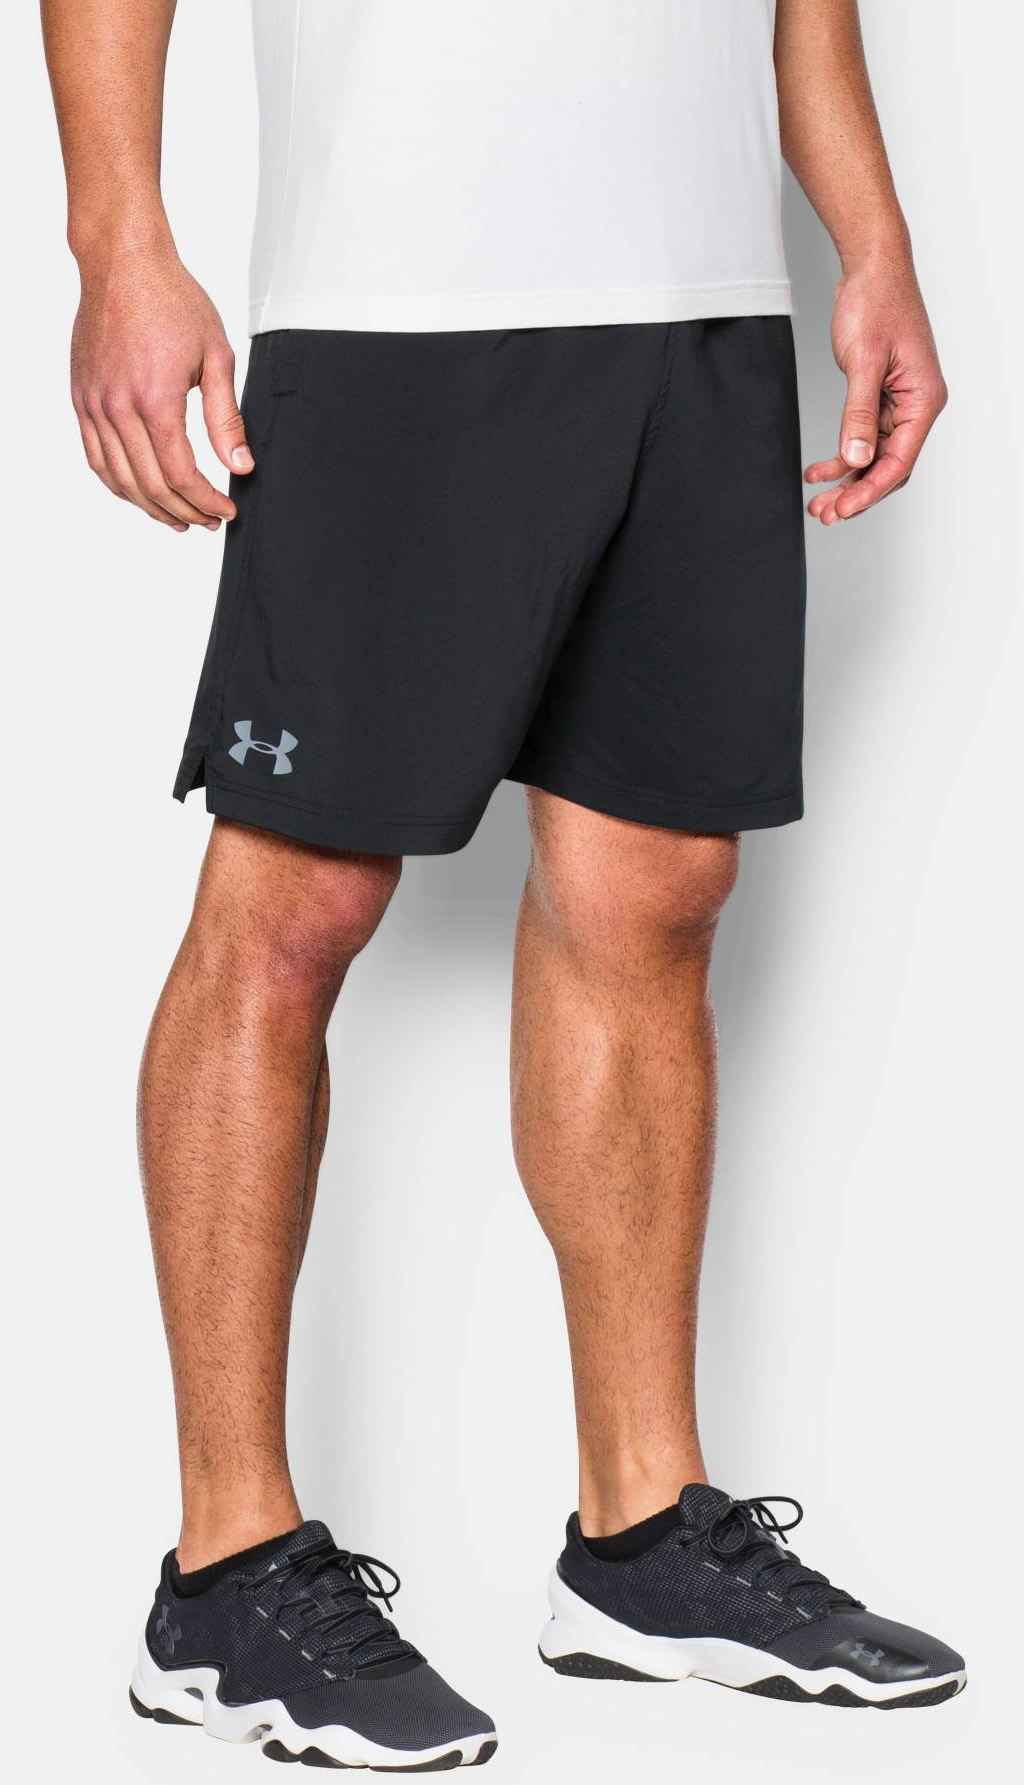 Black Under Armour Men's Shorts